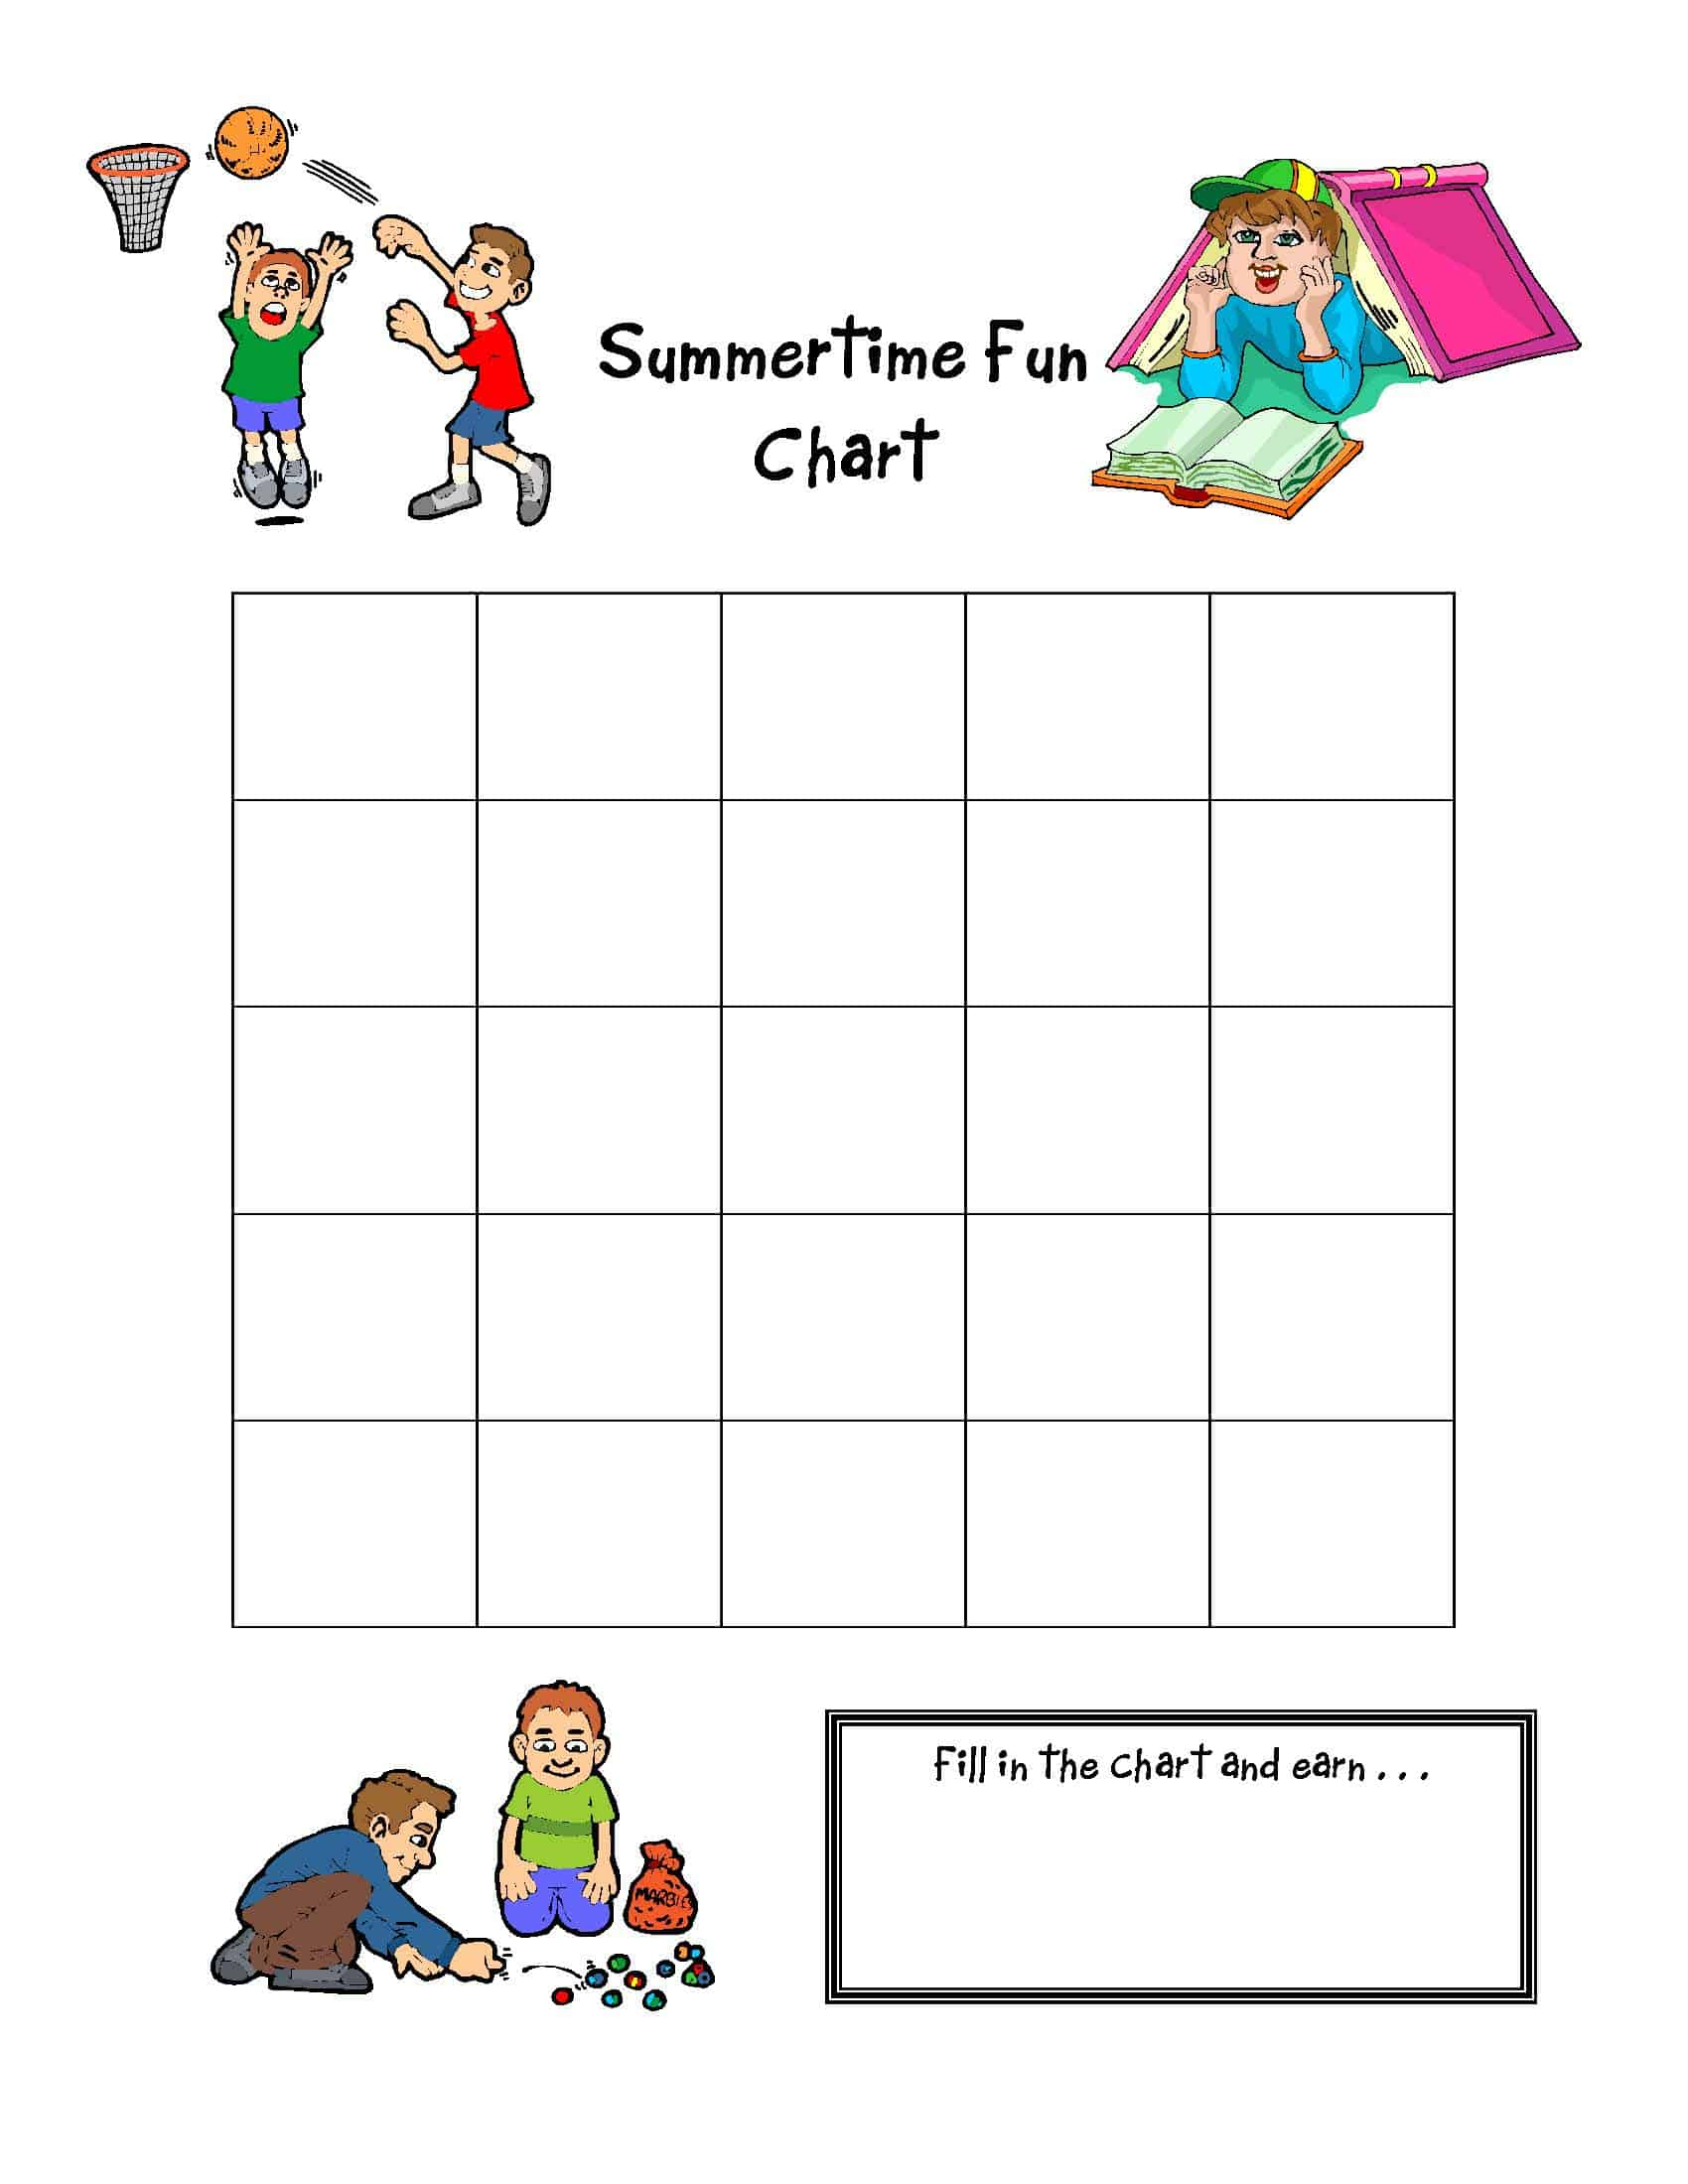 {FREE} Summertime Fun Charts to Download!